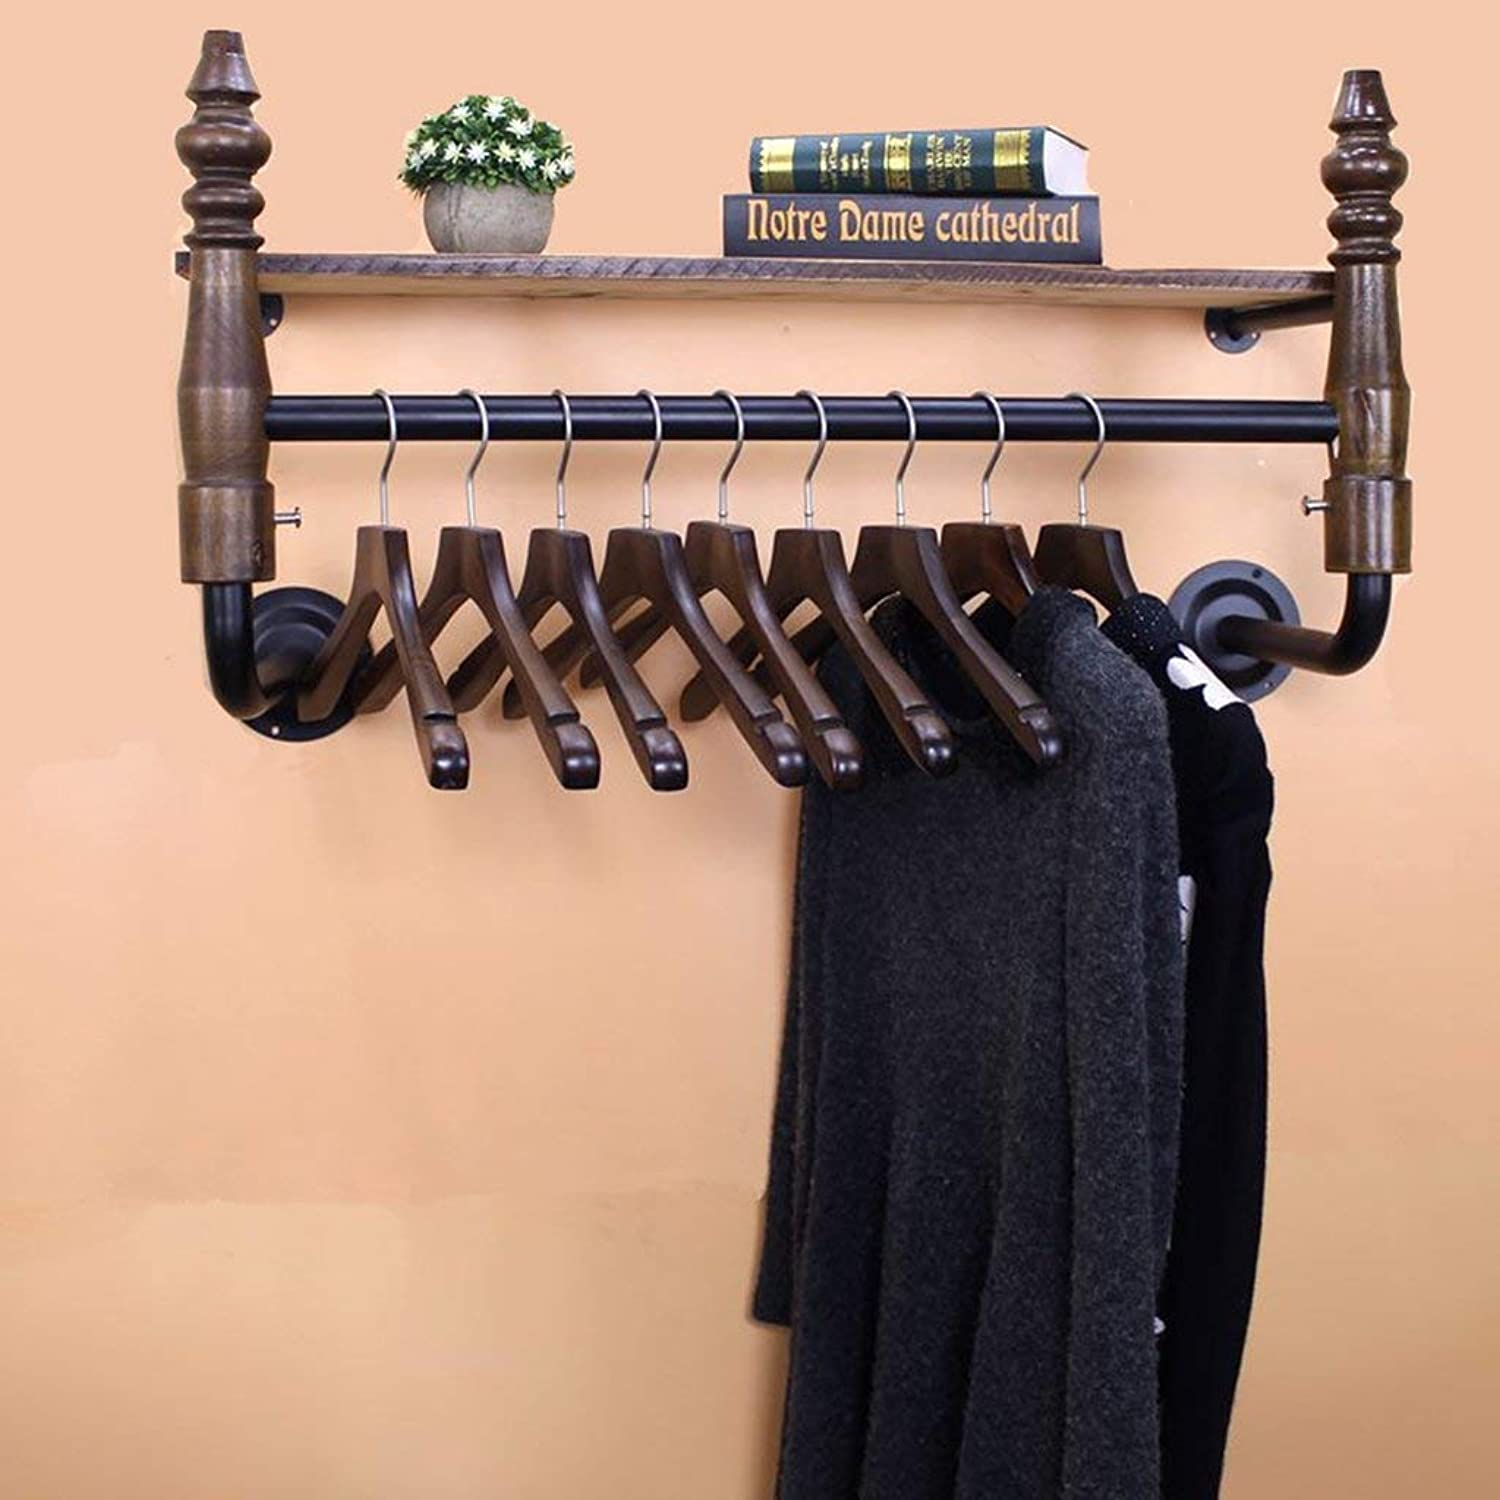 DYR Iron Coat Rack + Solid Wood Clothing Store Lateral Display Stand Clothes Hanger Retro Clothing Store Shelves Wall Shelf Coat Hanger Wall Hang on The Wall Hangers Stable and Resistant (Dimen